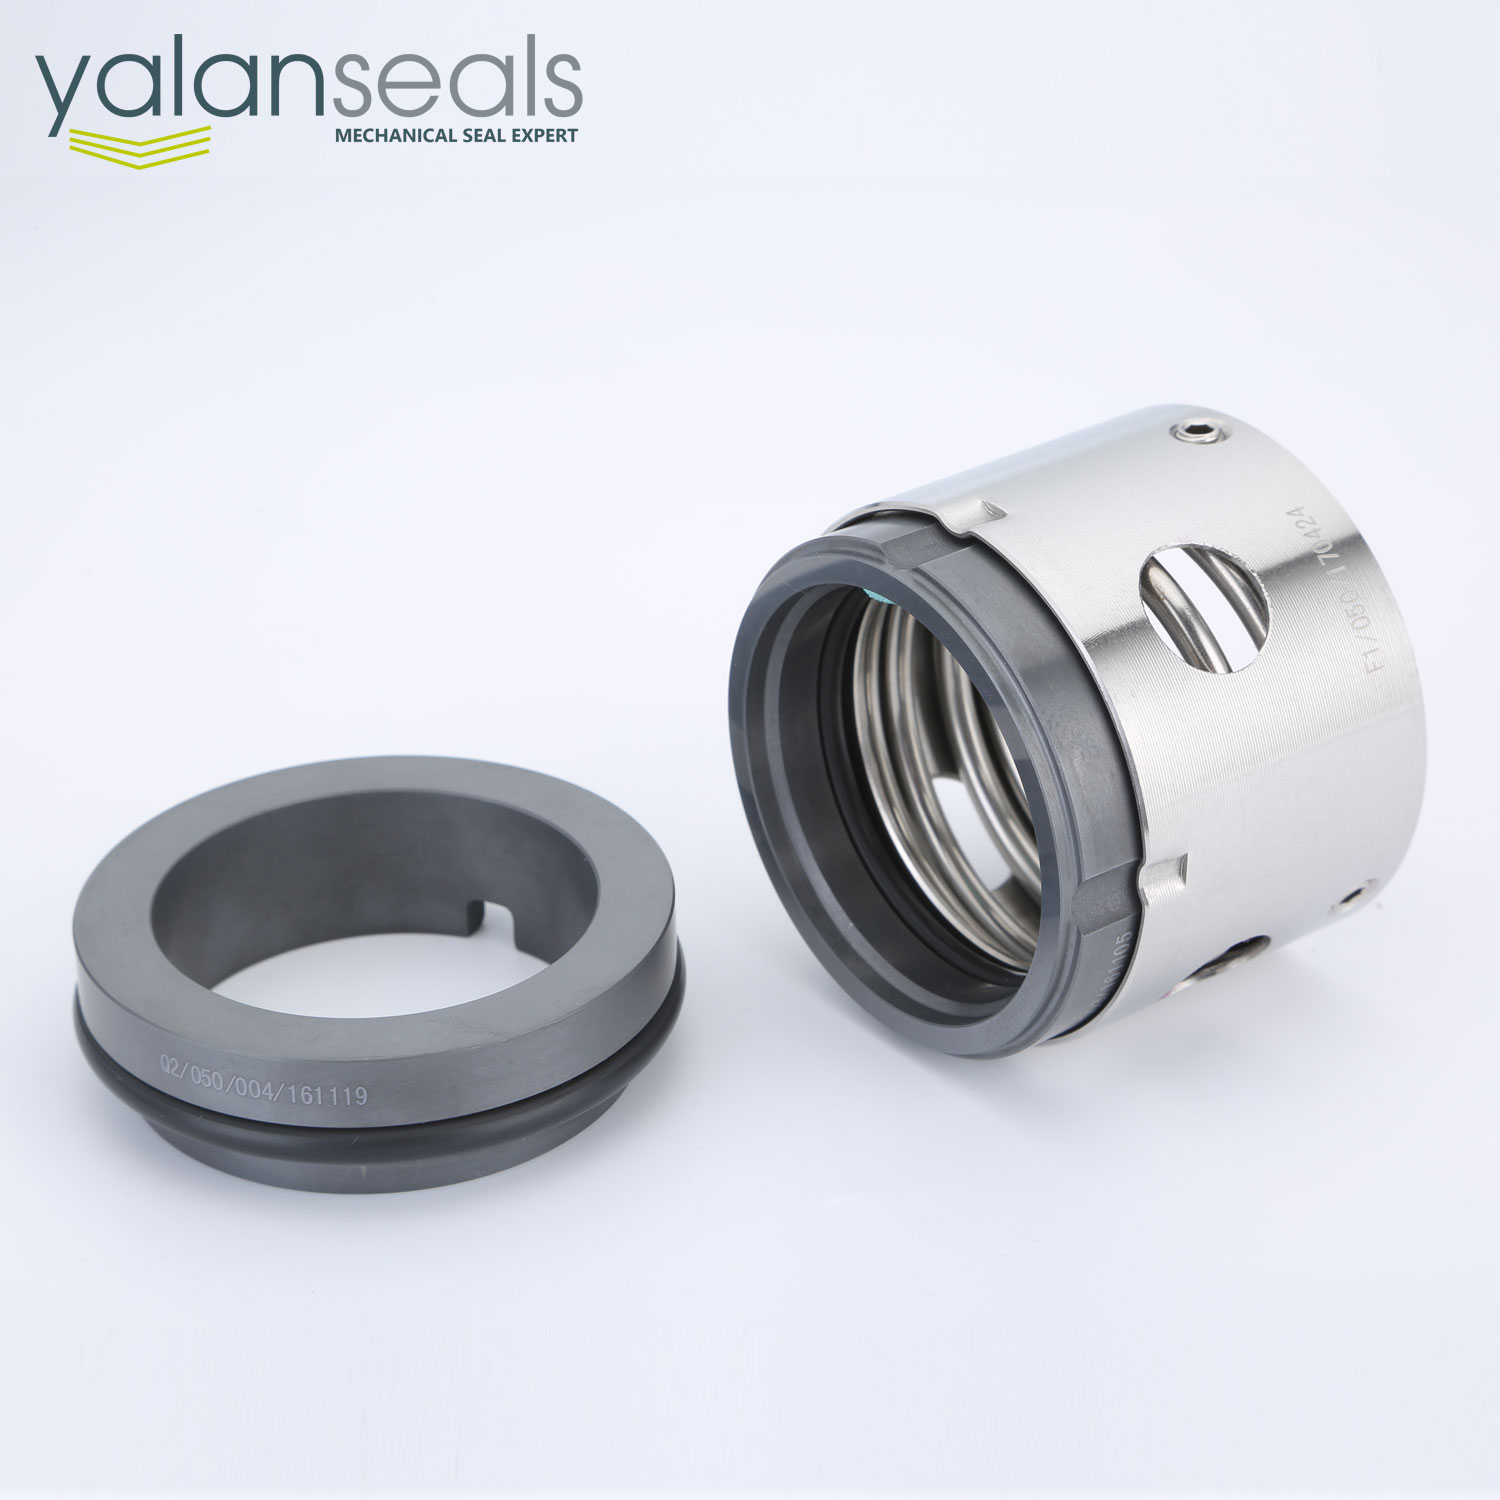 104 Mechanical Seal for Chemical Centrifugal Pumps, Screw Pumps, and Sewage Pumps